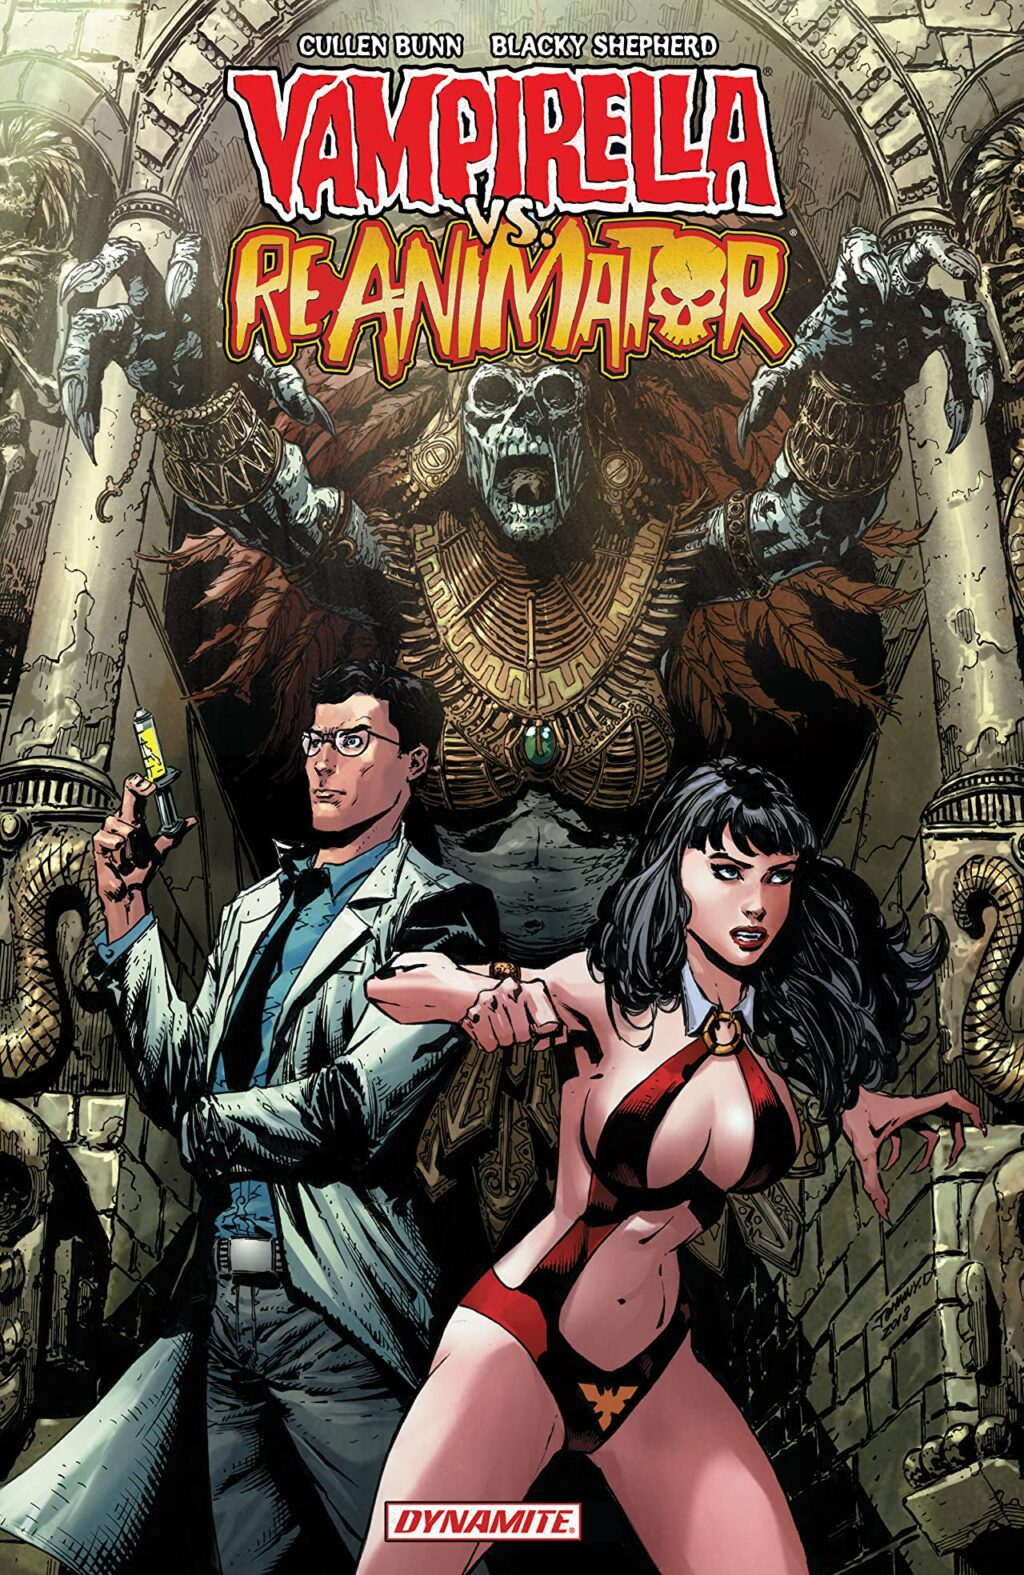 5 Vampirella vs Reanimator 1024x1575 - More Cursed Pages: Another 6 Comics for Horror Fans